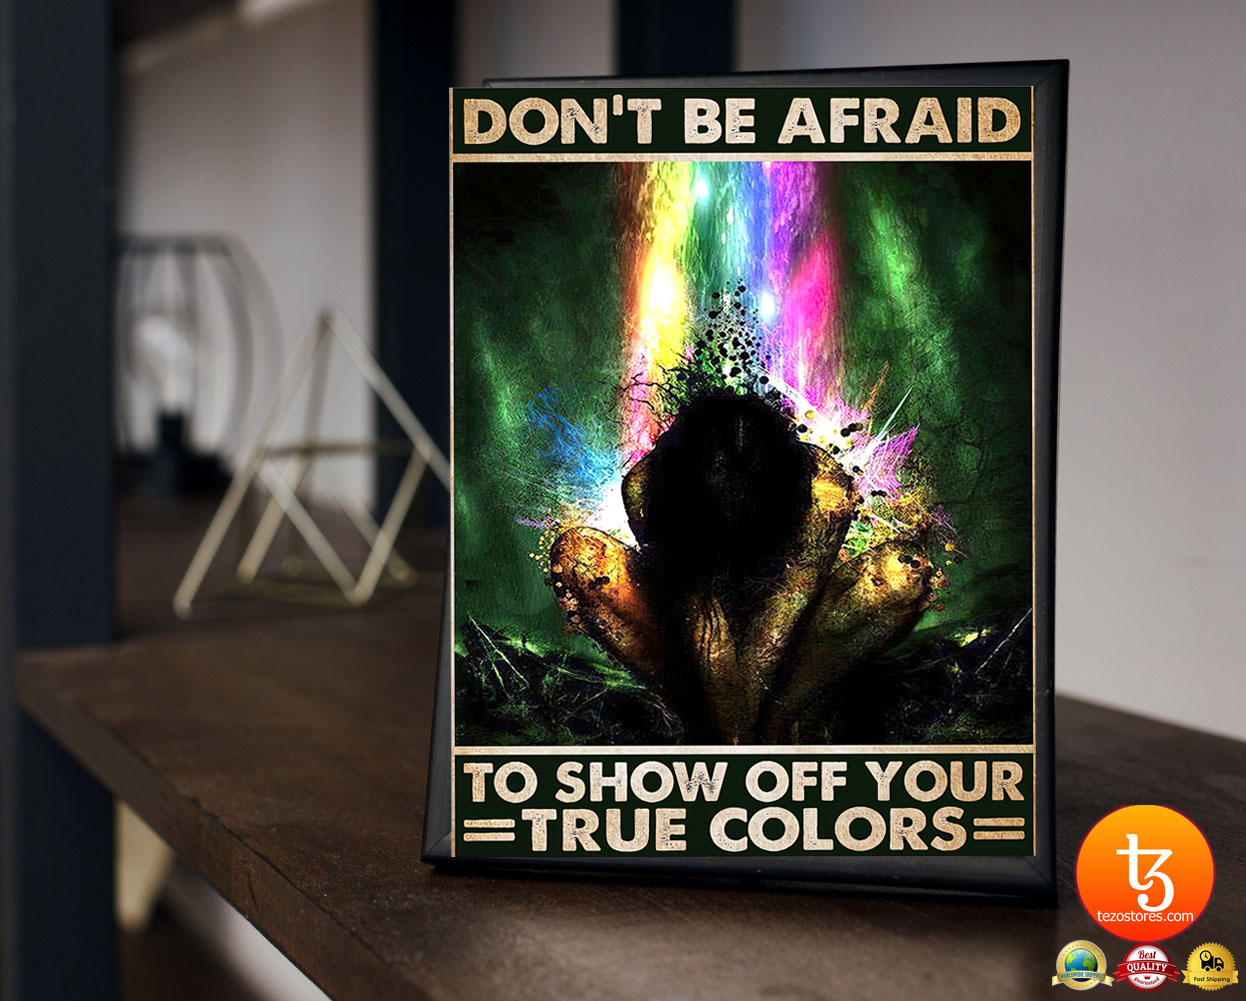 Don't be afraid to show off your true colors poster 23